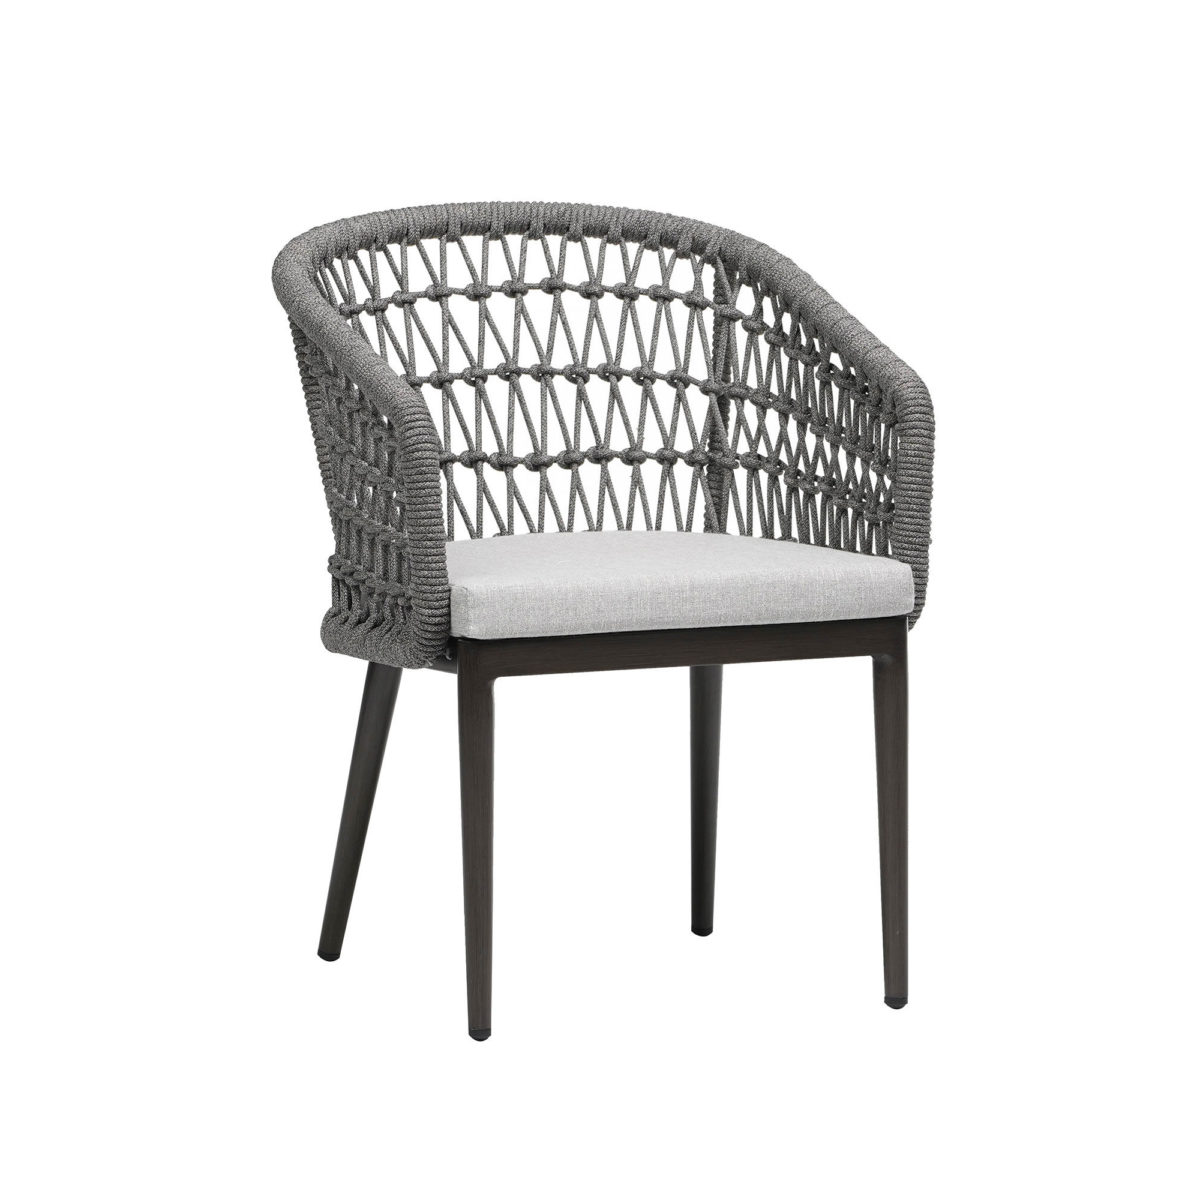 Poinciana dining_arm_chair